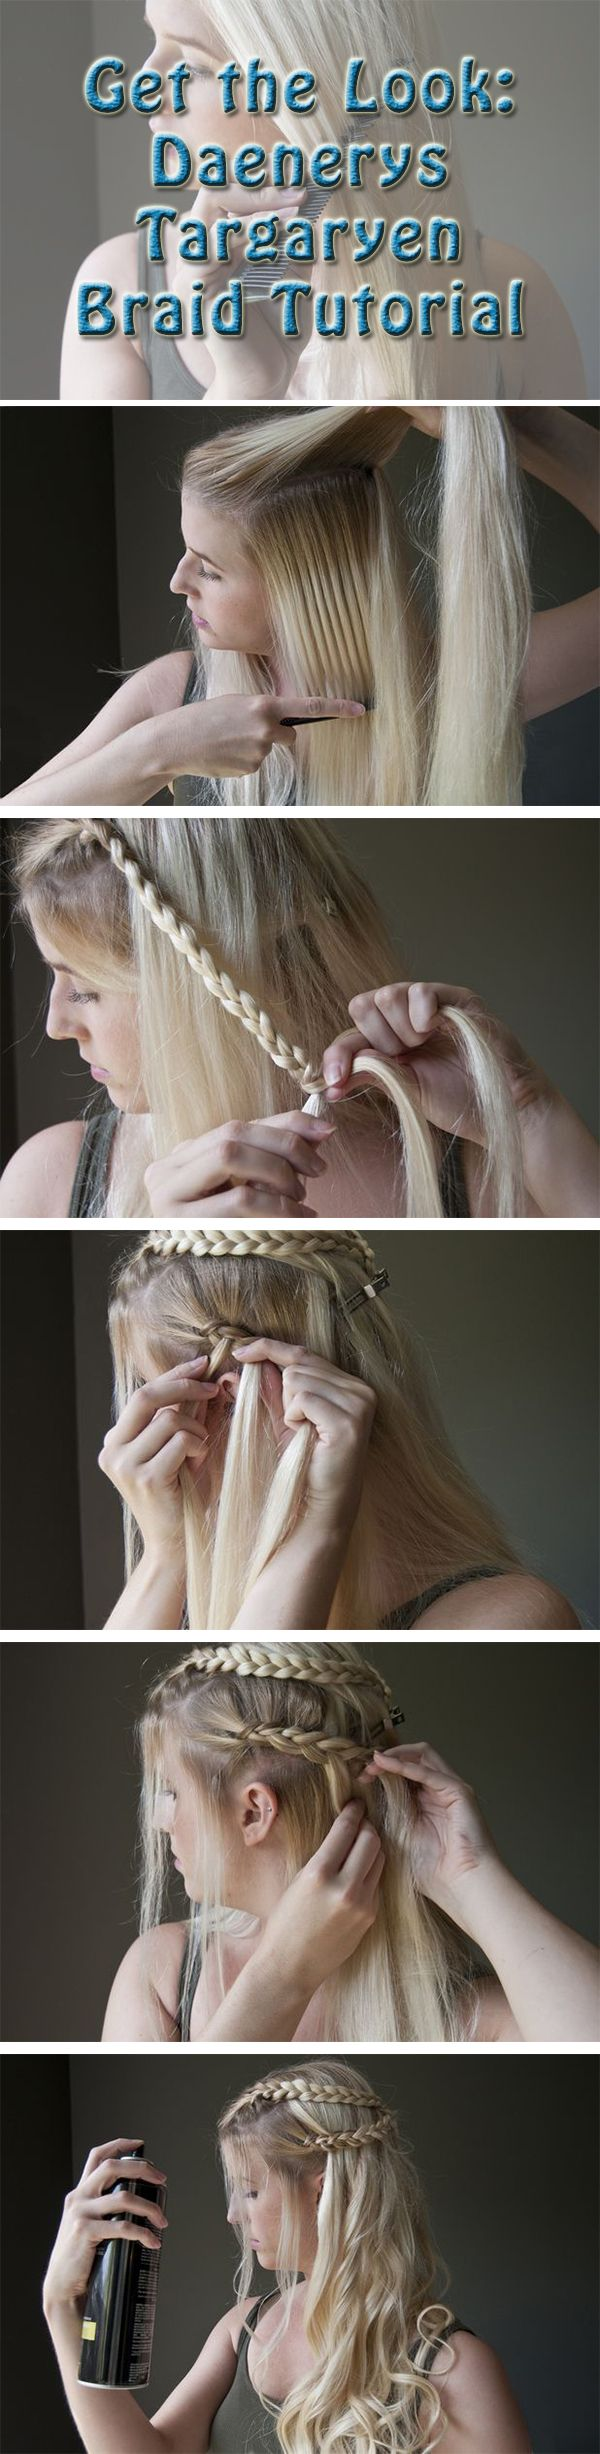 Get Games of Thrones Deanerys Targaryen's iconic braids down for your Halloween costume.